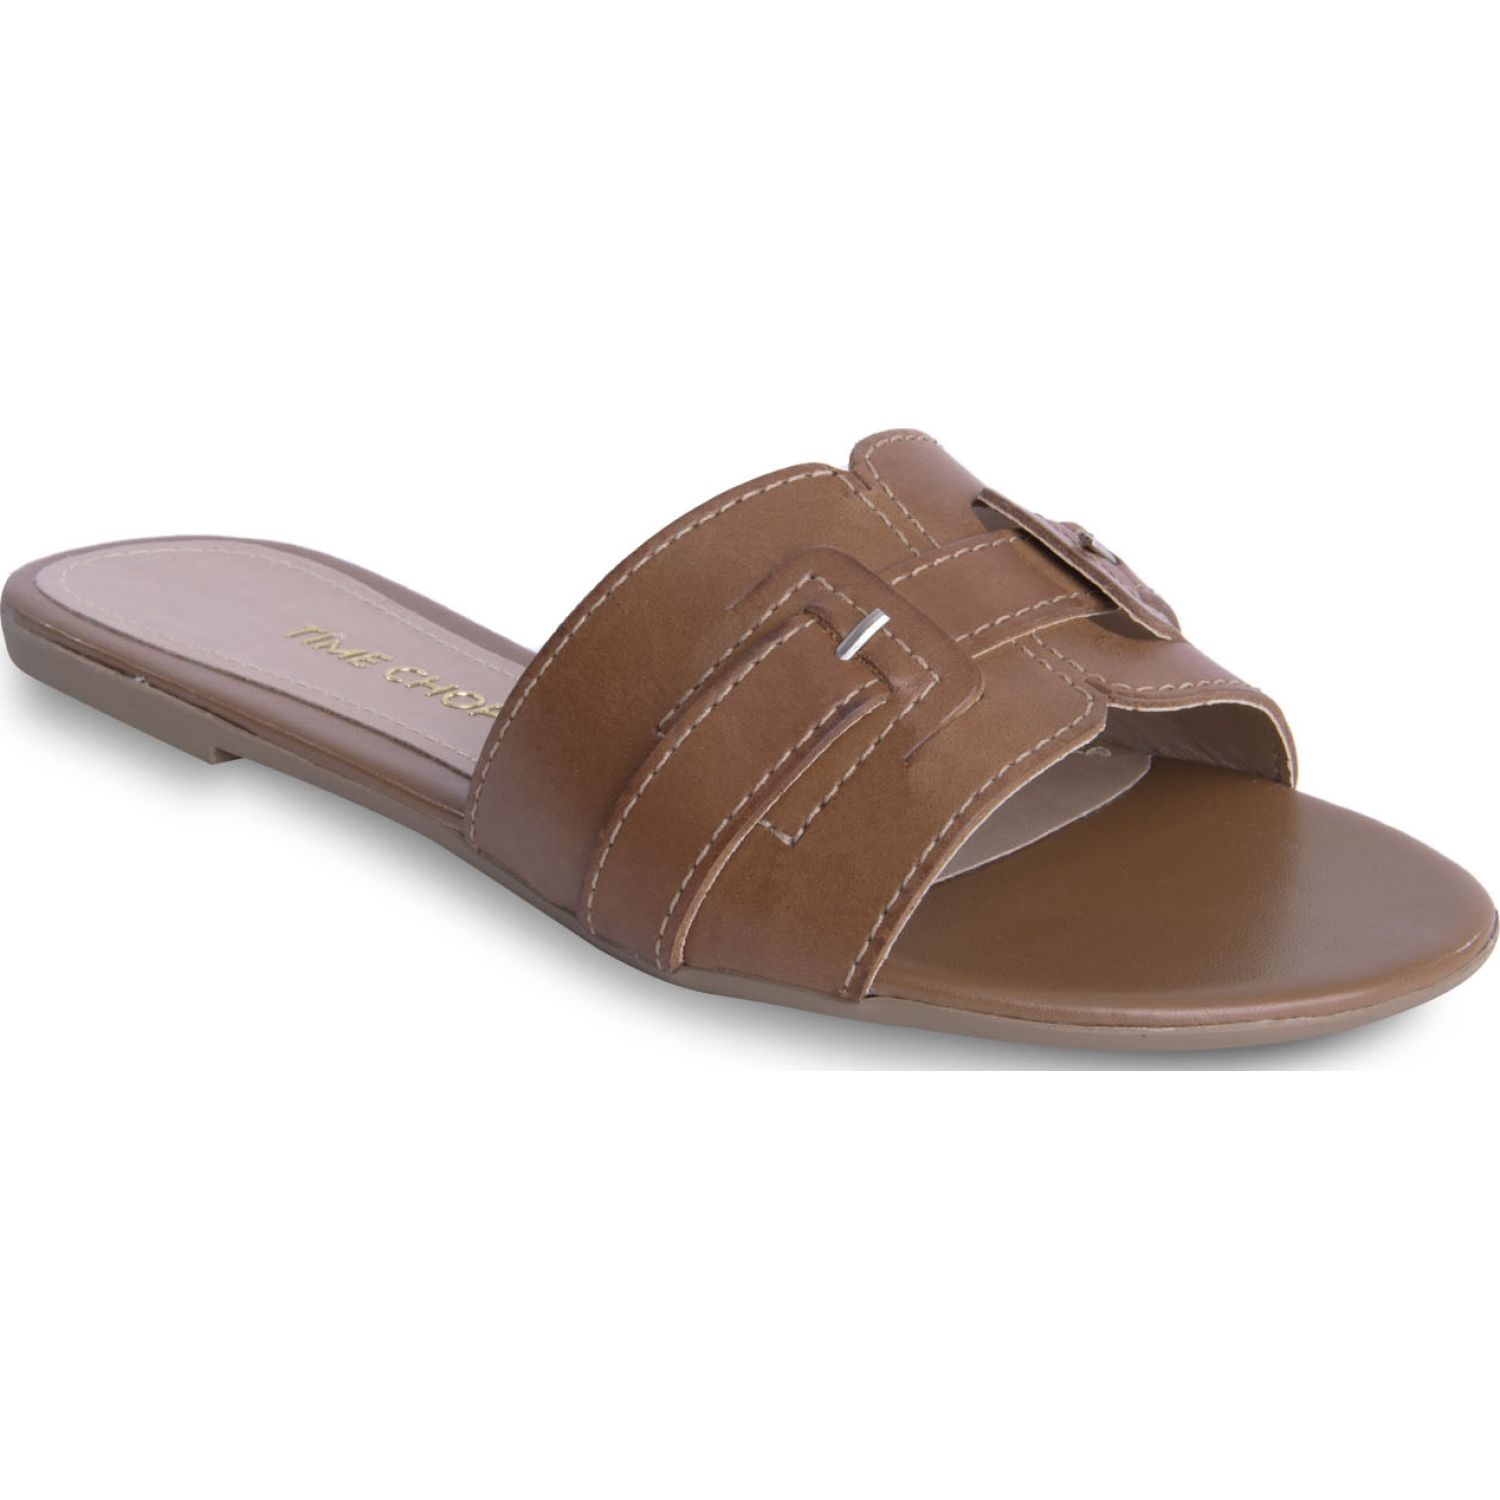 TIME CHOPPER SANDALIA 1076215 TAN TAN Flats